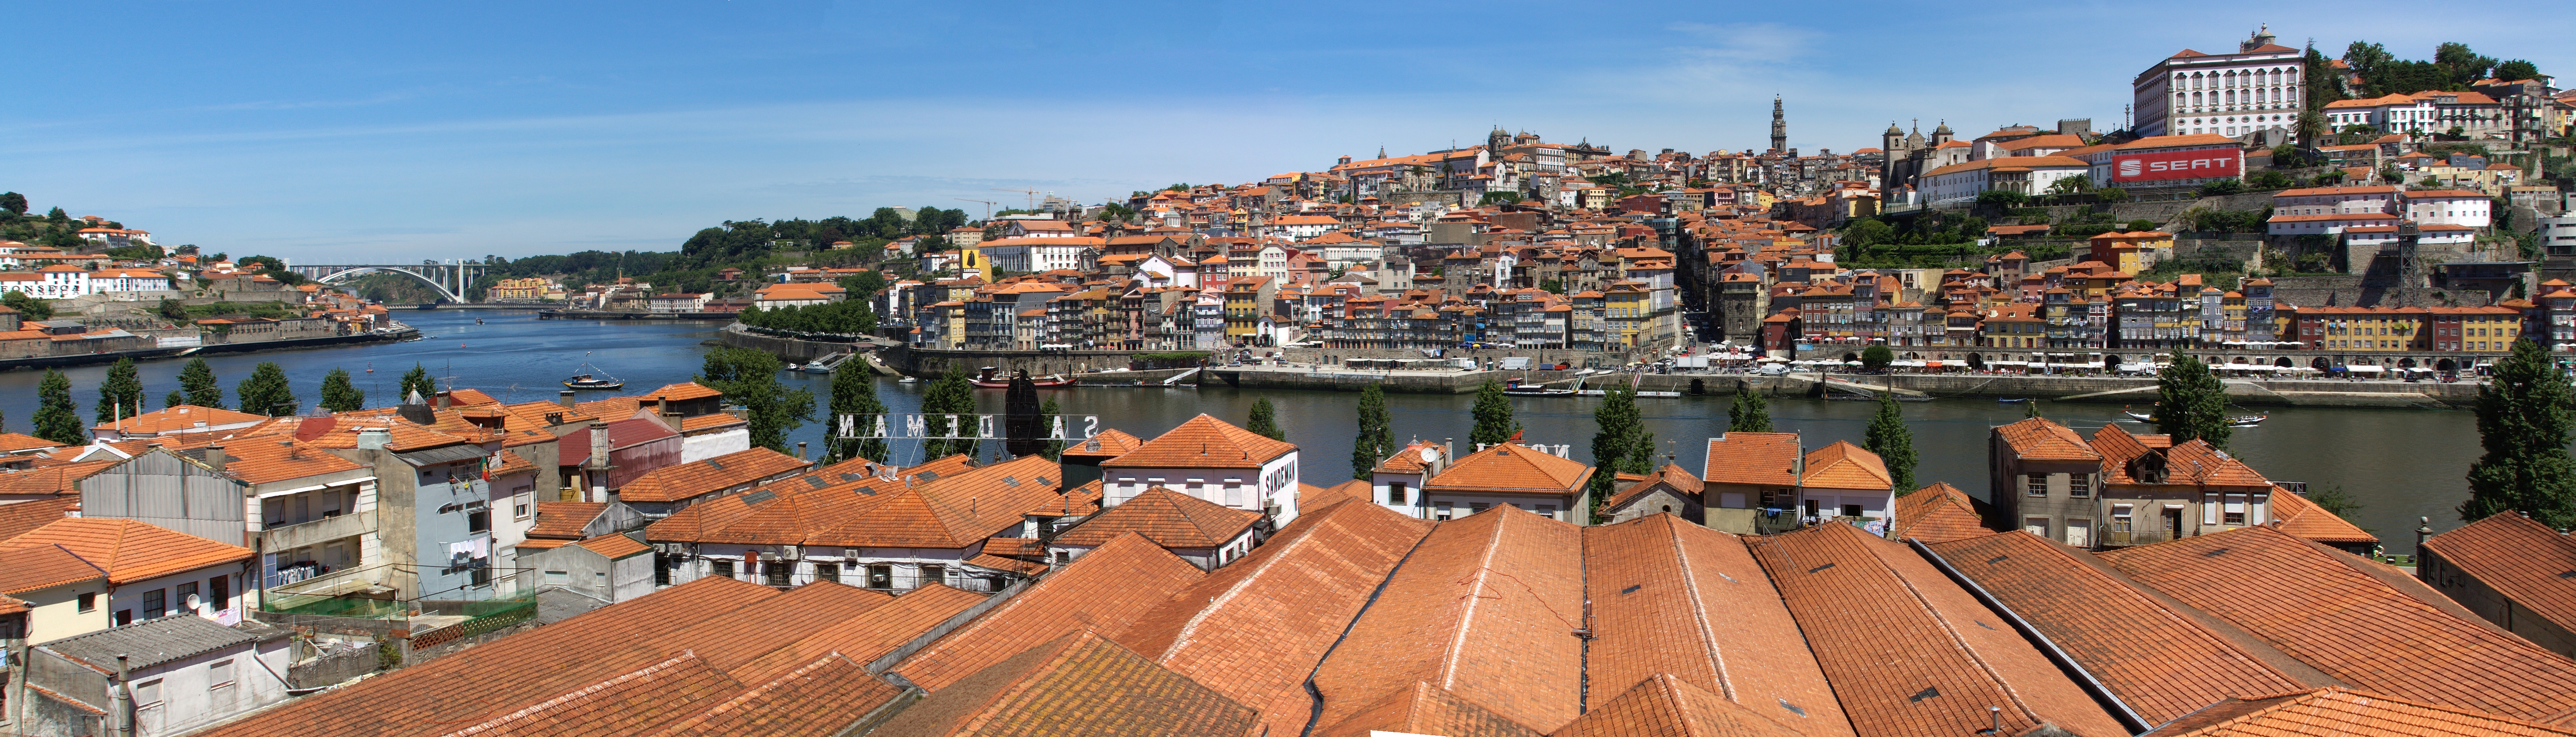 vila nova de gaia muslim personals Vila nova de gaia is the portuguese municipality with the biggest number of blue flag beaches in 2009 and in 2010: 17 beaches along 17 km of seaside some popular beaches are: miramar , granja , aguda, valadares , francelos , madalena and canidelo.